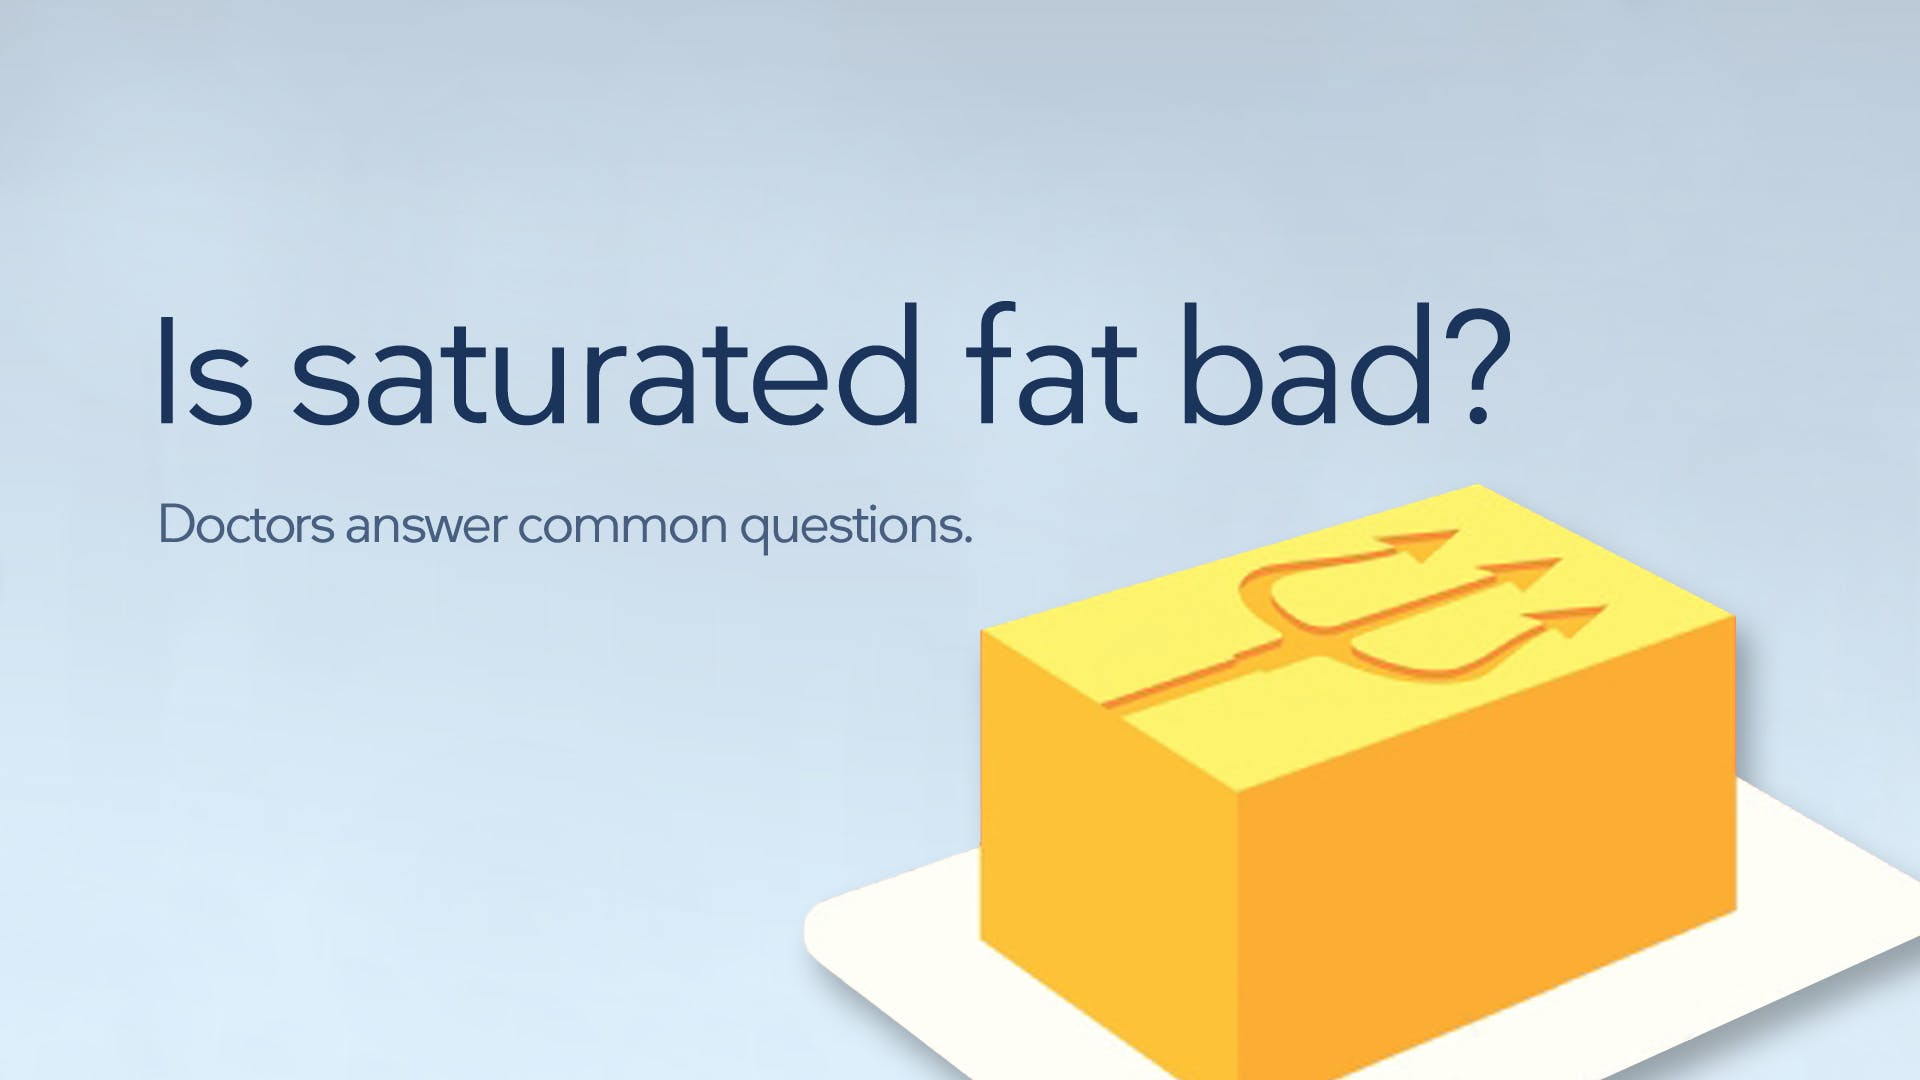 Is saturated fat bad?